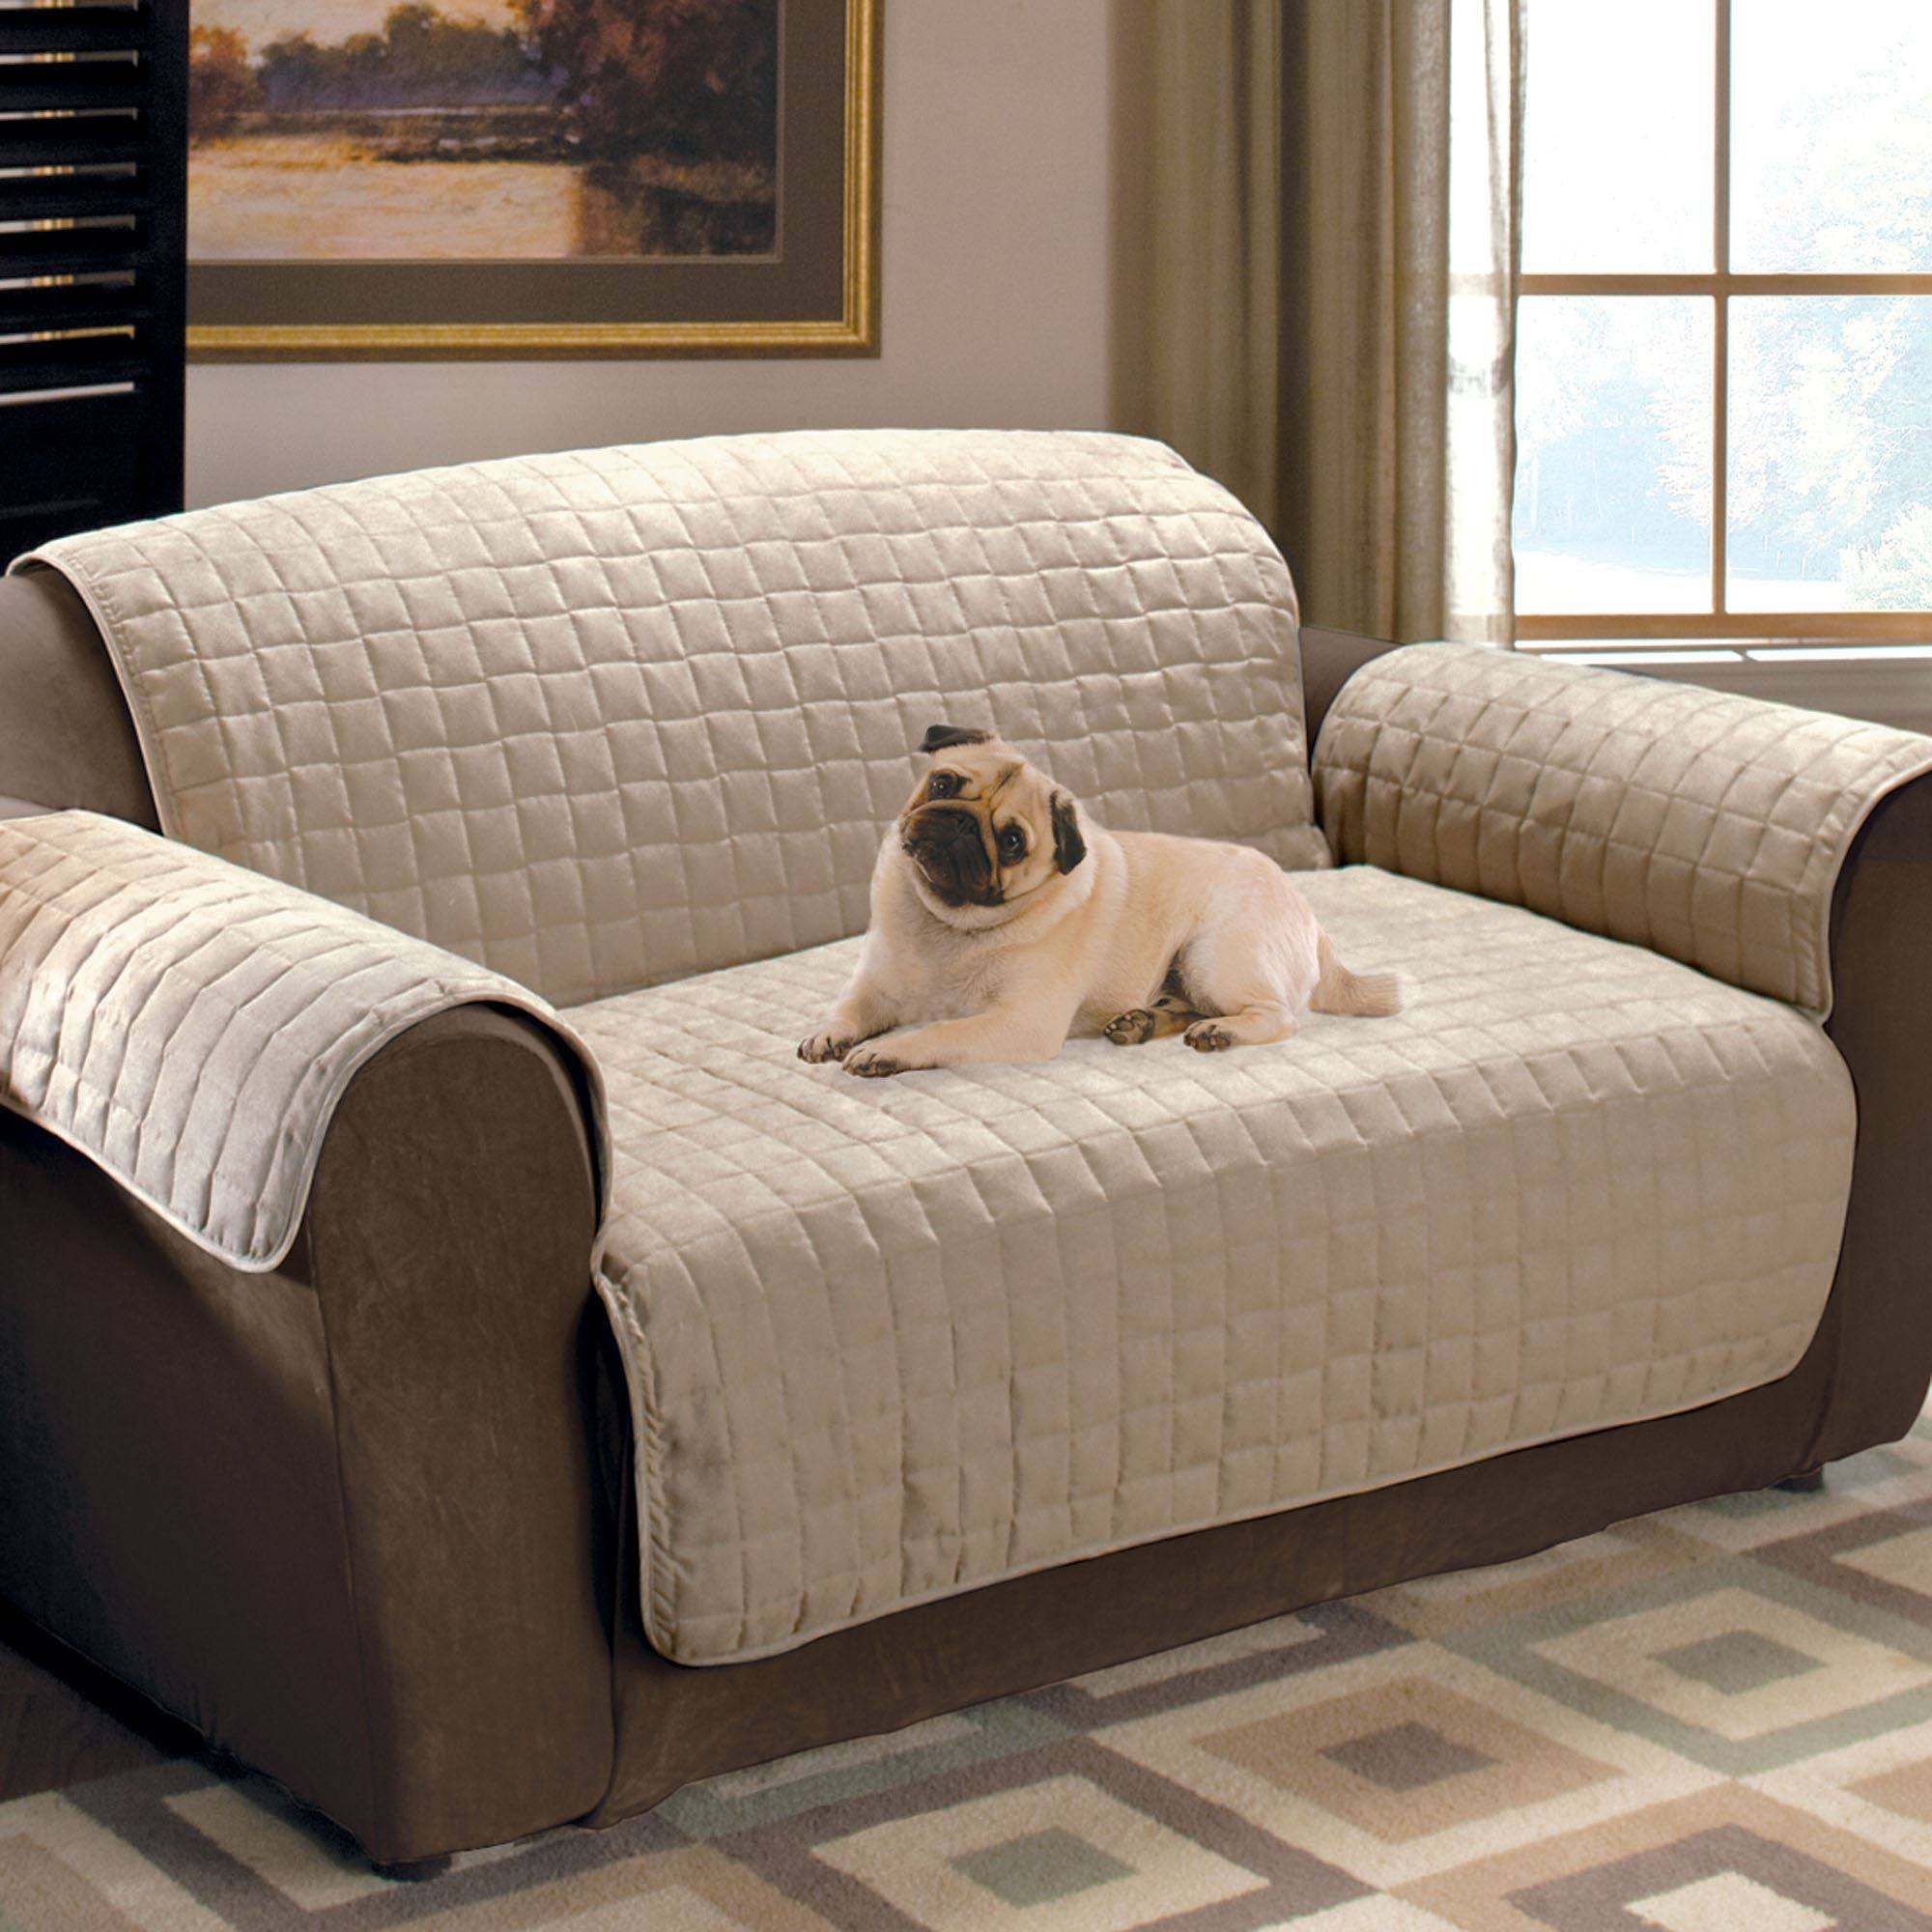 Faux Suede Pet Furniture Covers For Sofas, Loveseats, And Chairs within Suede Slipcovers For Sofas (Image 4 of 15)